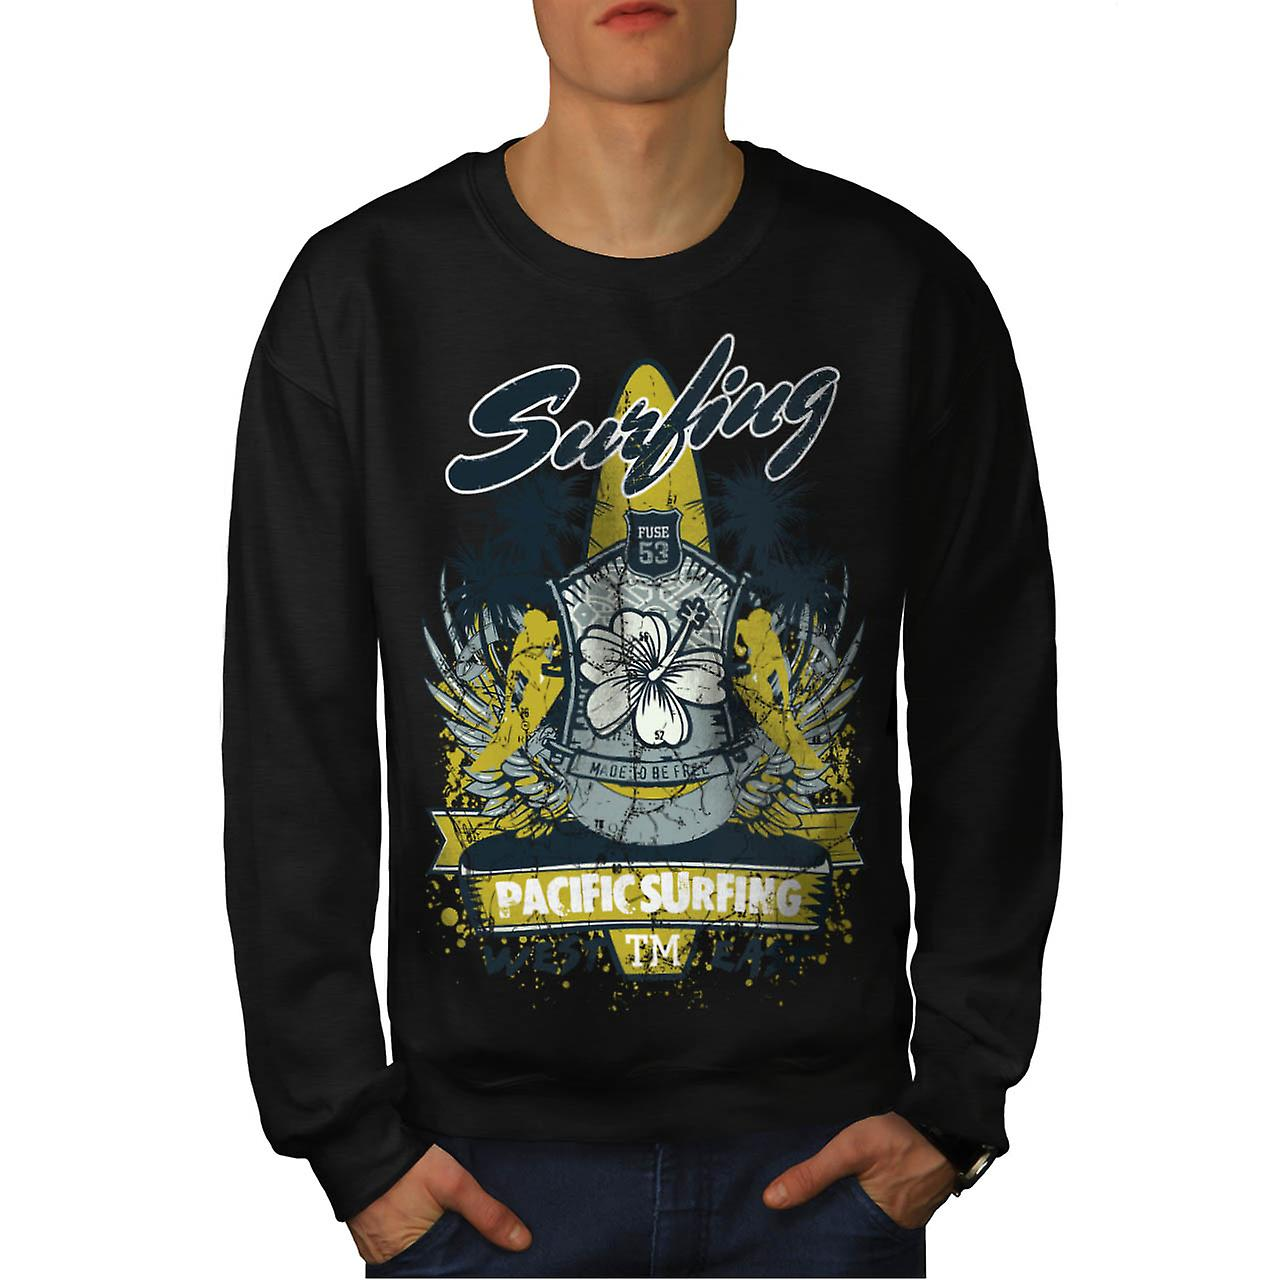 Pacific Surfing Beach West øst menn svart Sweatshirt | Wellcoda